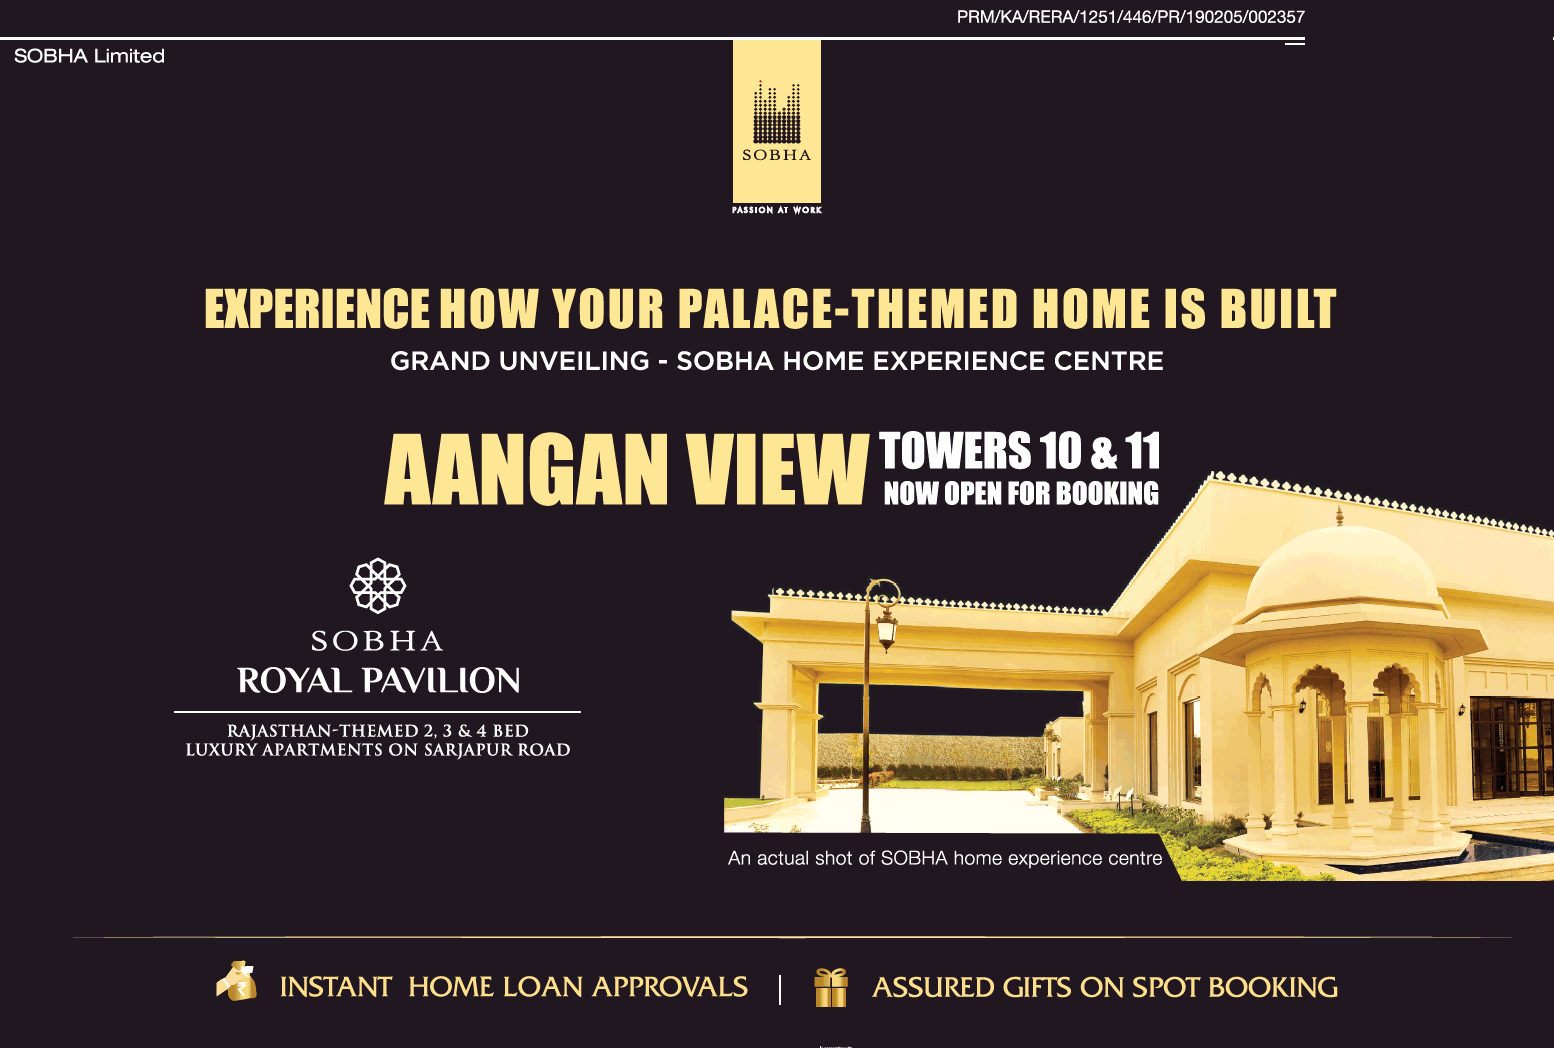 Rajasthan themed 2 3 and 4 BHK luxury apartments at Sobha Royal Pavilion in Bangalore